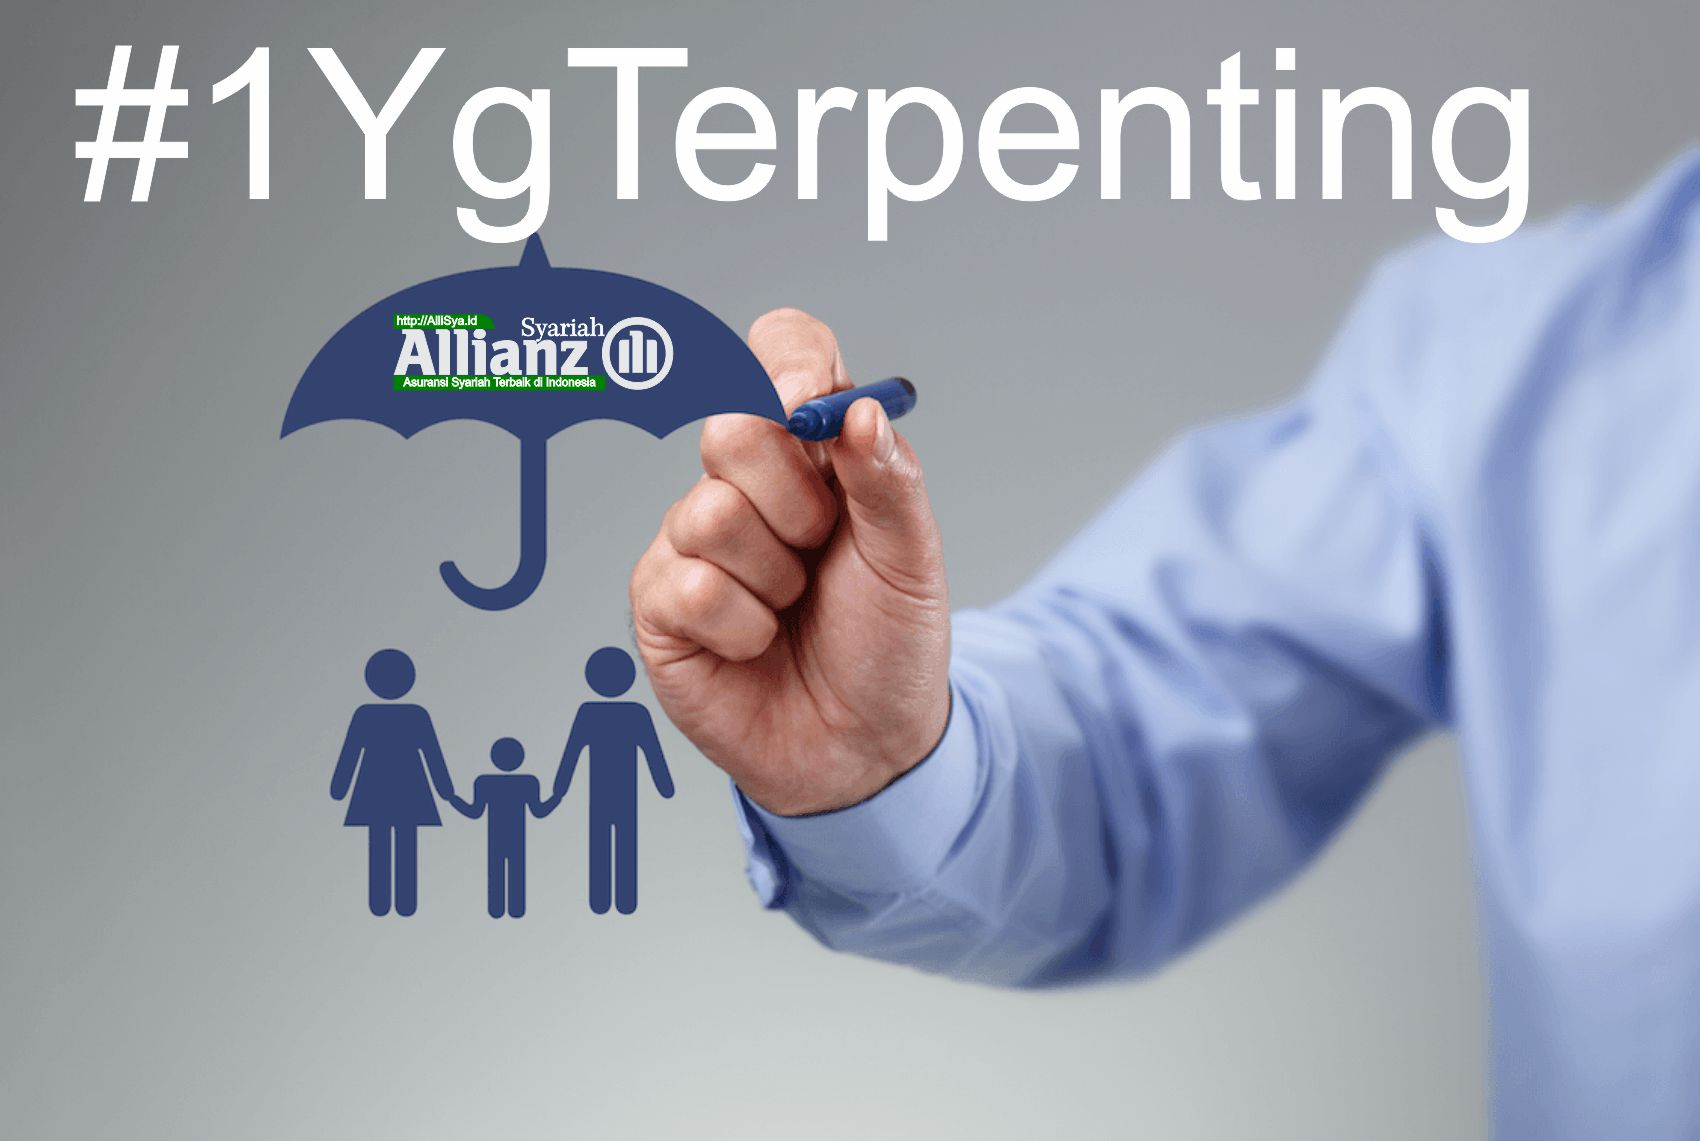 #1YgTerpenting